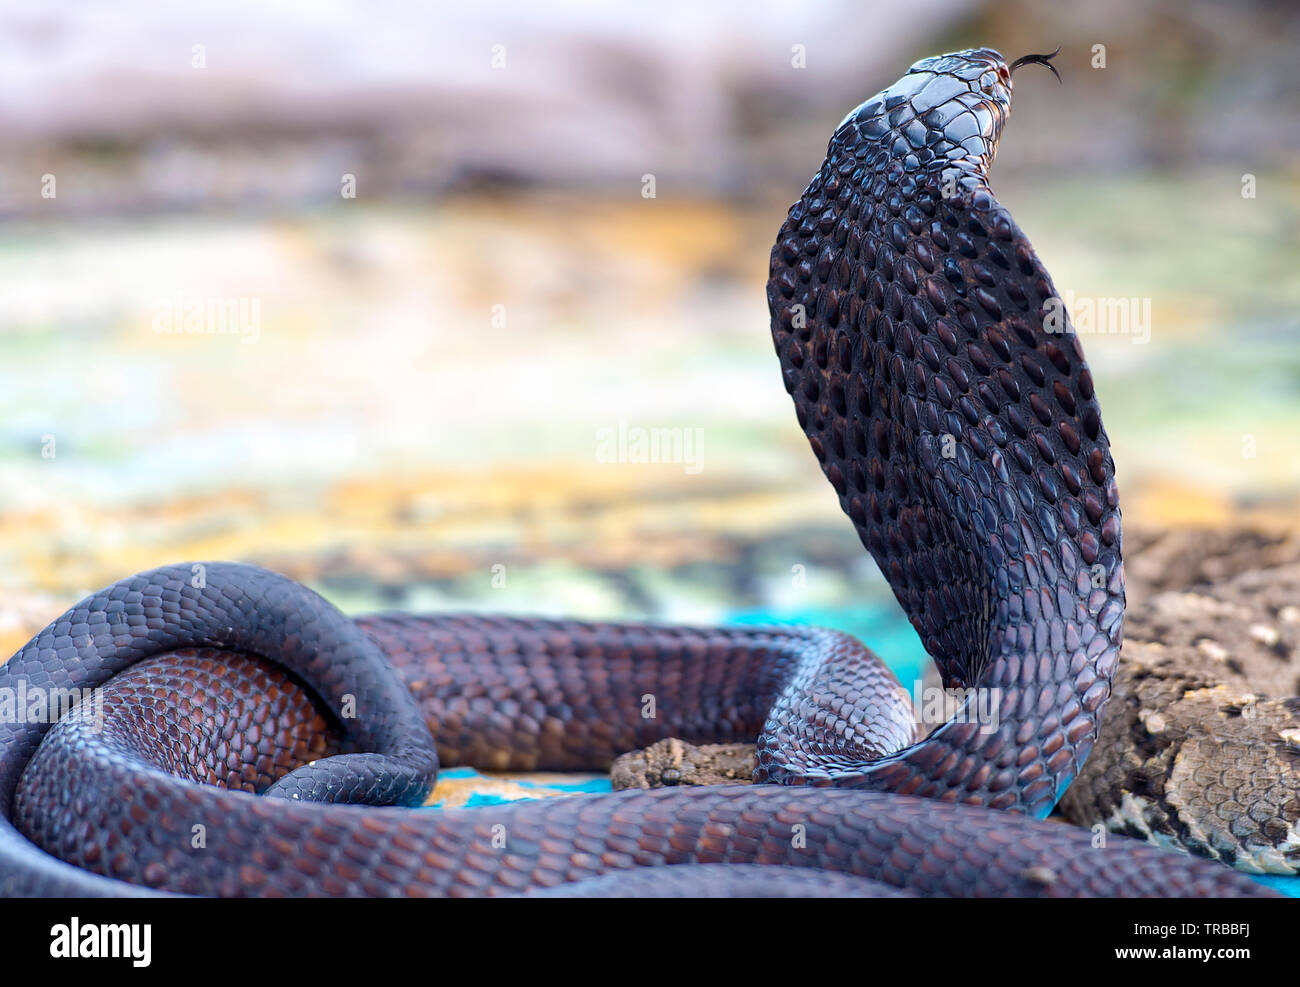 Black Cobra Stock Photos & Black Cobra Stock Images - Alamy